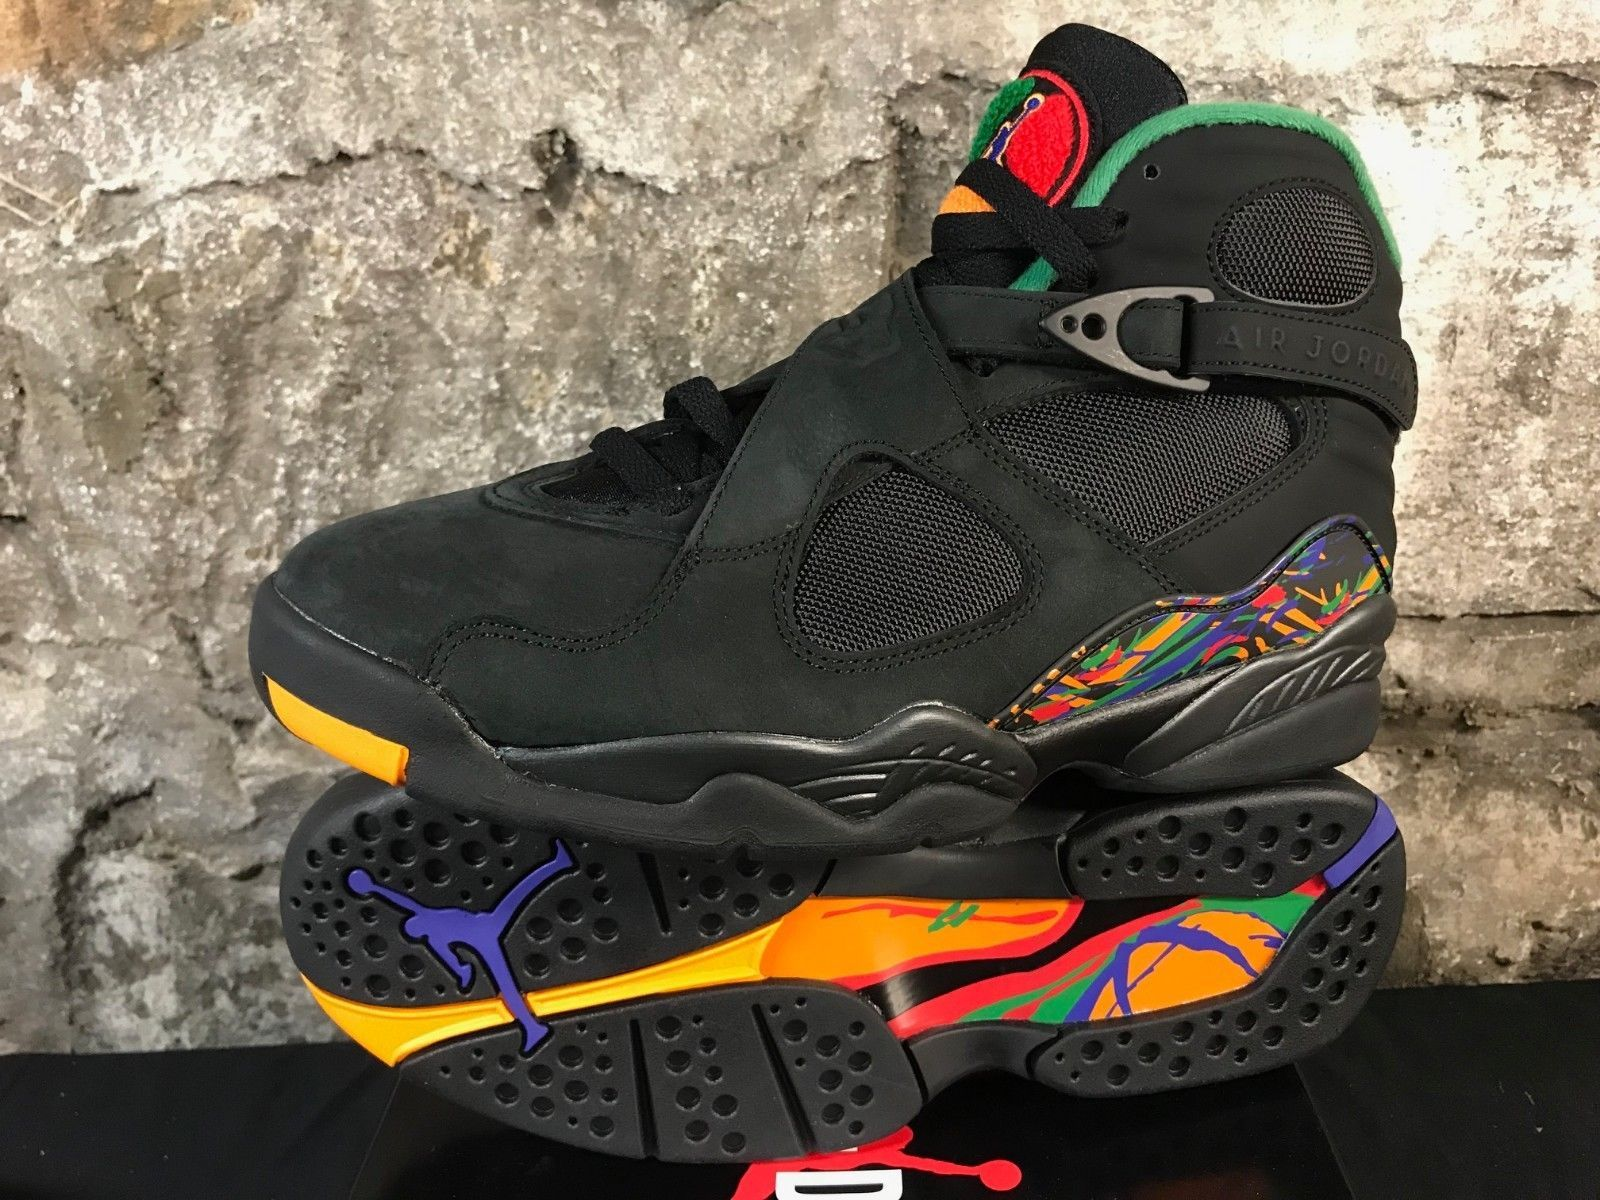 new product 9ab89 c3d5c Details about Air Jordan Retro 8 Tinker Air Raid Urban ...